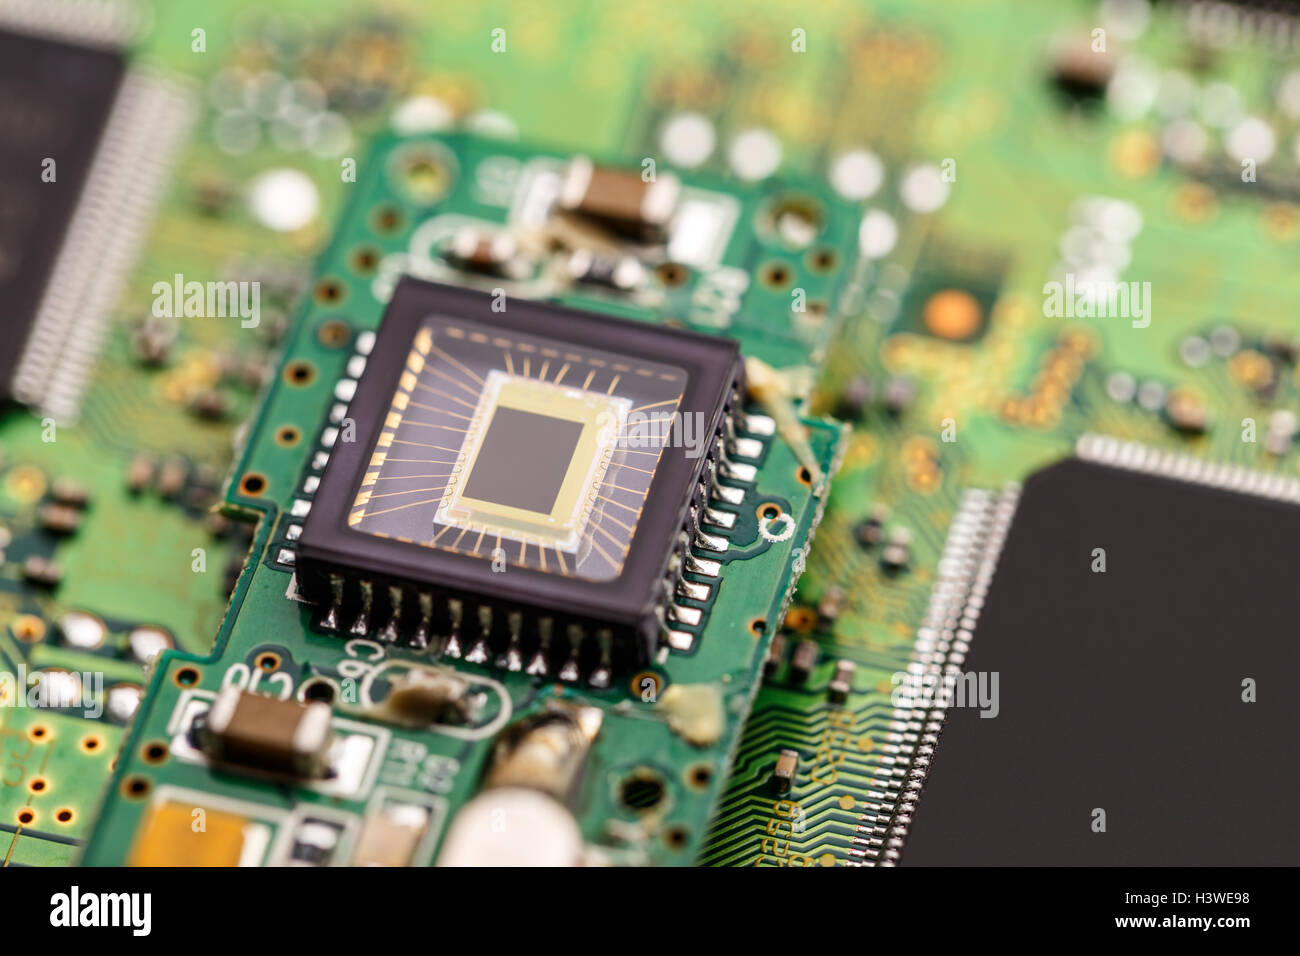 Processor (microchip) interconnected receiving and sending information. - Stock Image